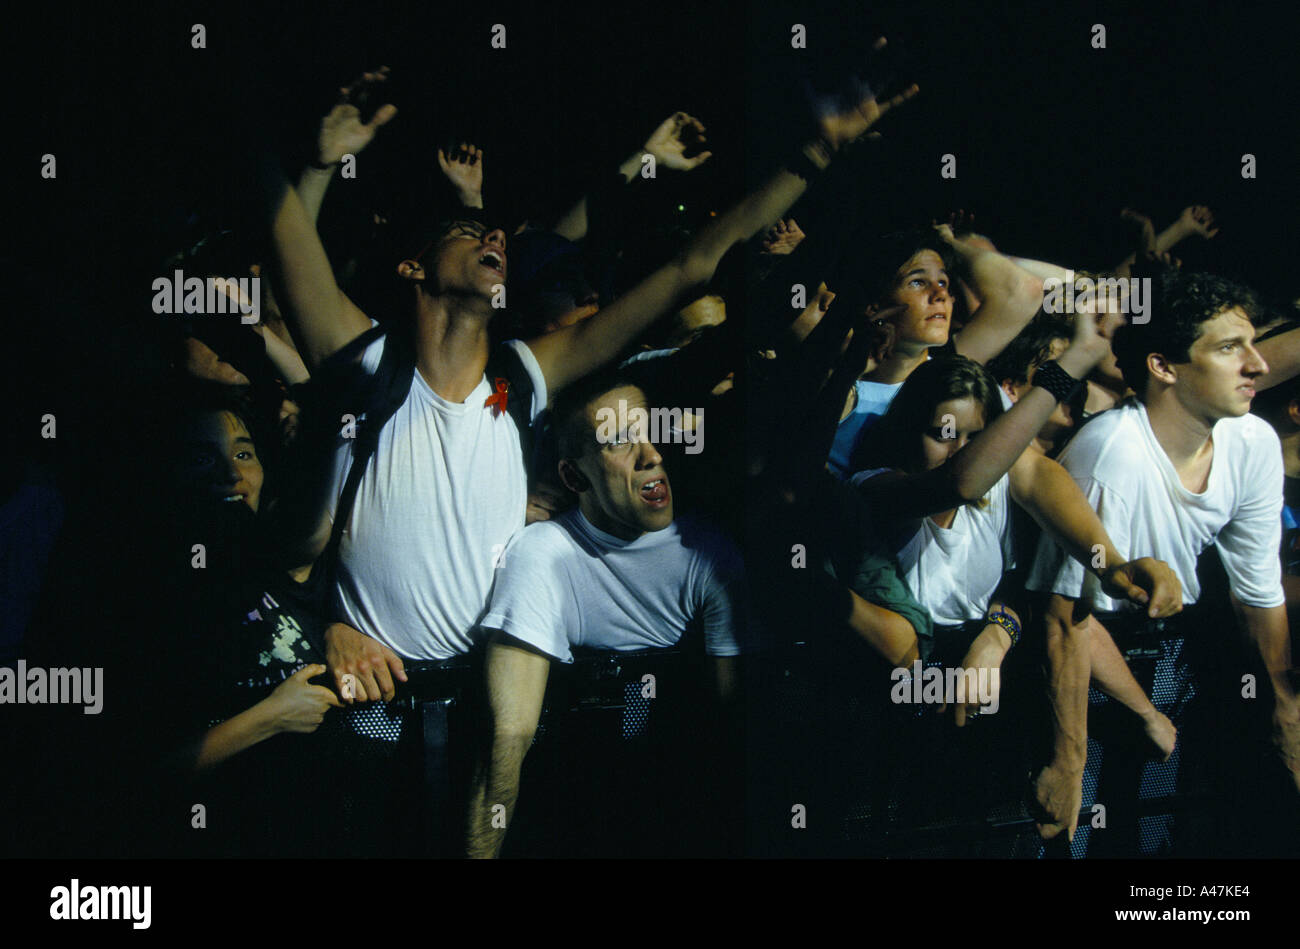 u2 on tour june 1993 pop group u2 on tour enraptured fans at front of stage reach towards band during concert - Stock Image